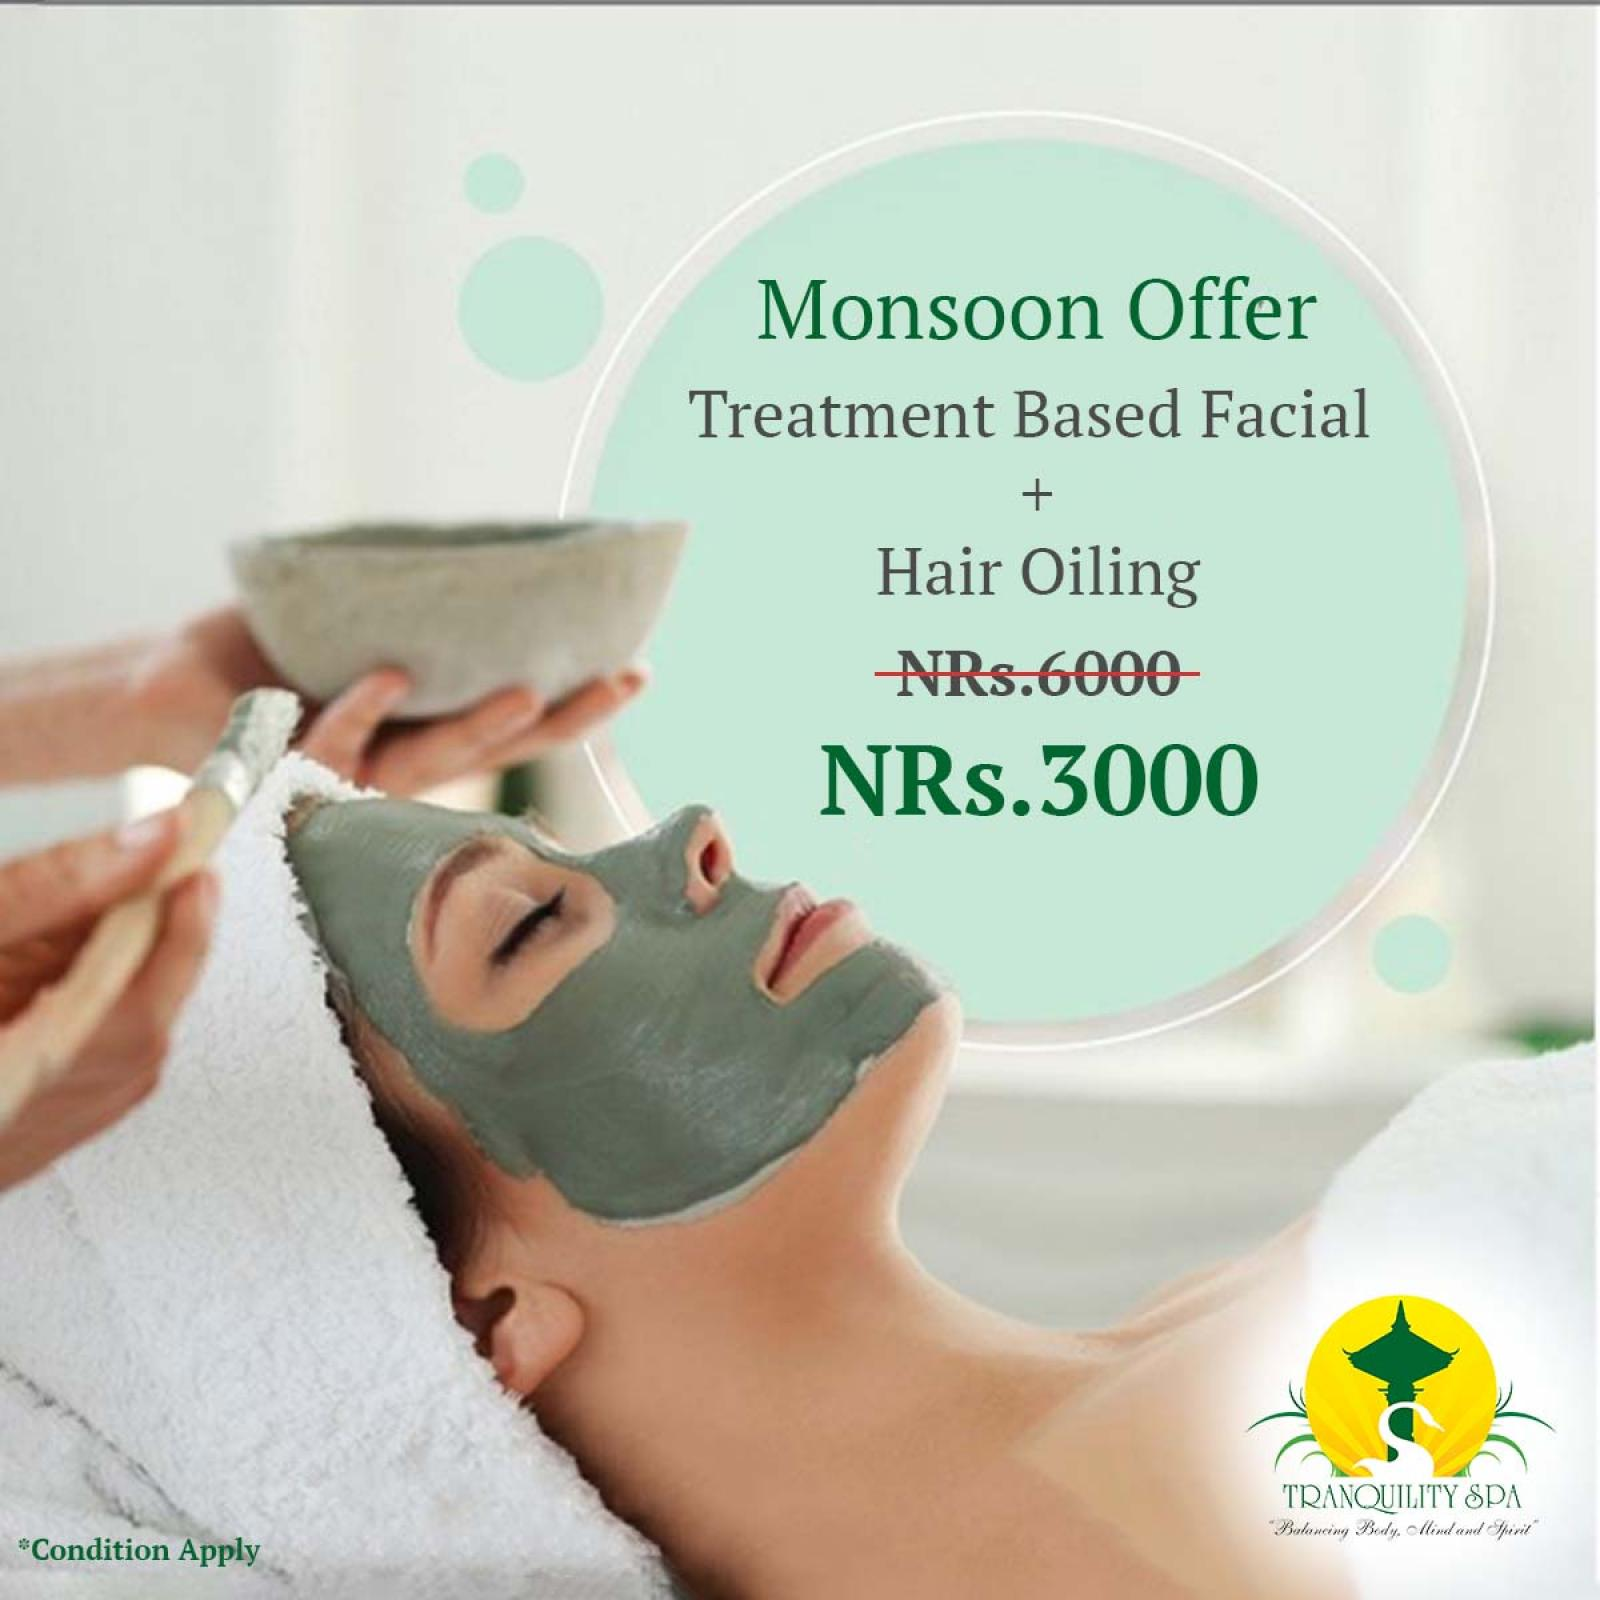 (Treatment Based Facial + Hair Oiling) only @Rs 3000 till 17th of September